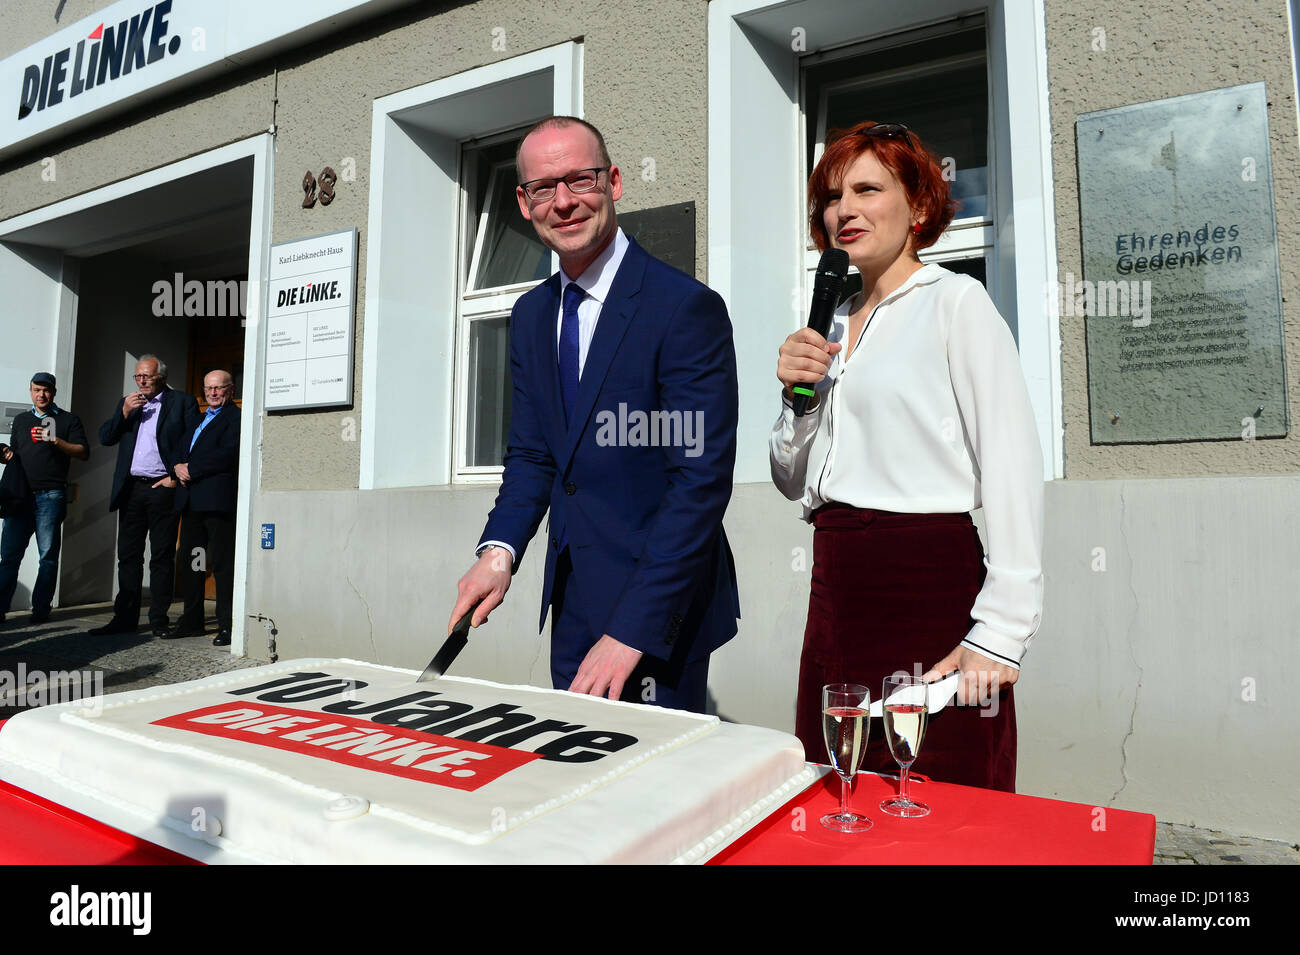 Berlin, Germany. 16th June, 2017. Matthias Hohn, Federal Secretary General of the political party 'The Left' - Stock Image